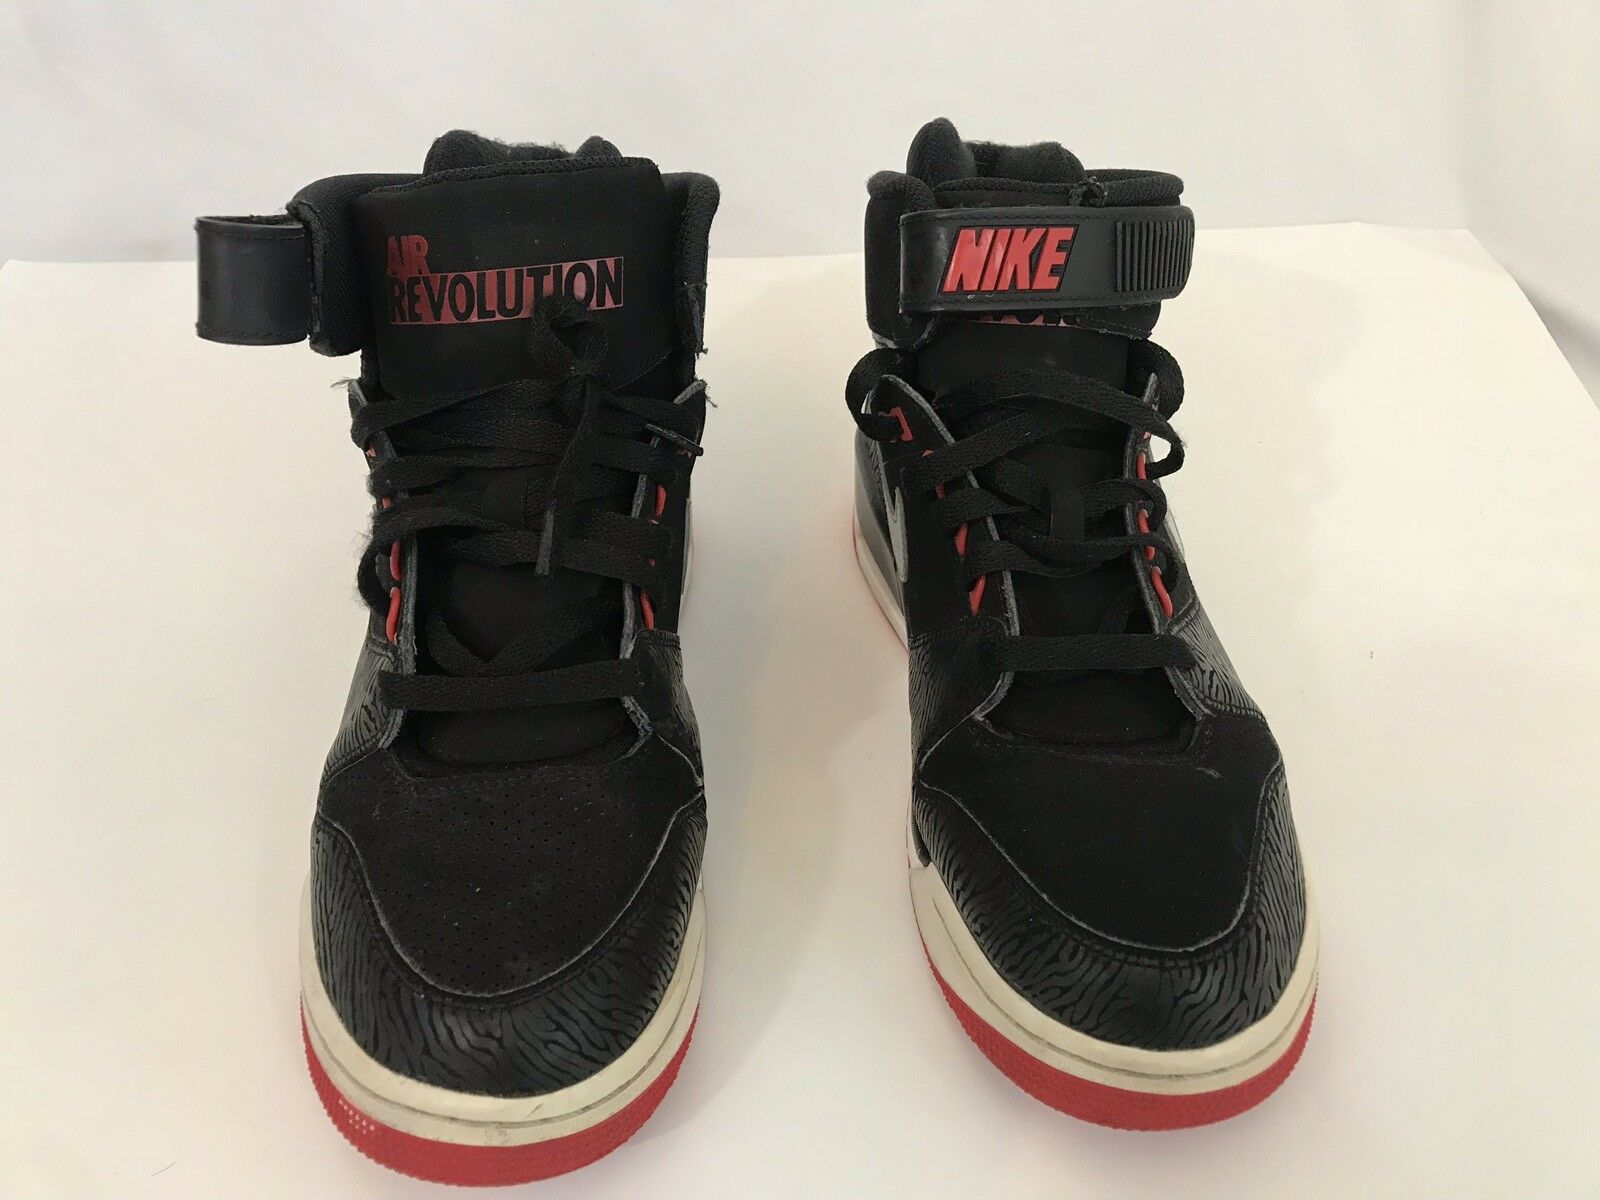 Nike Air Revolution Size 8.5 Black Red599462-001